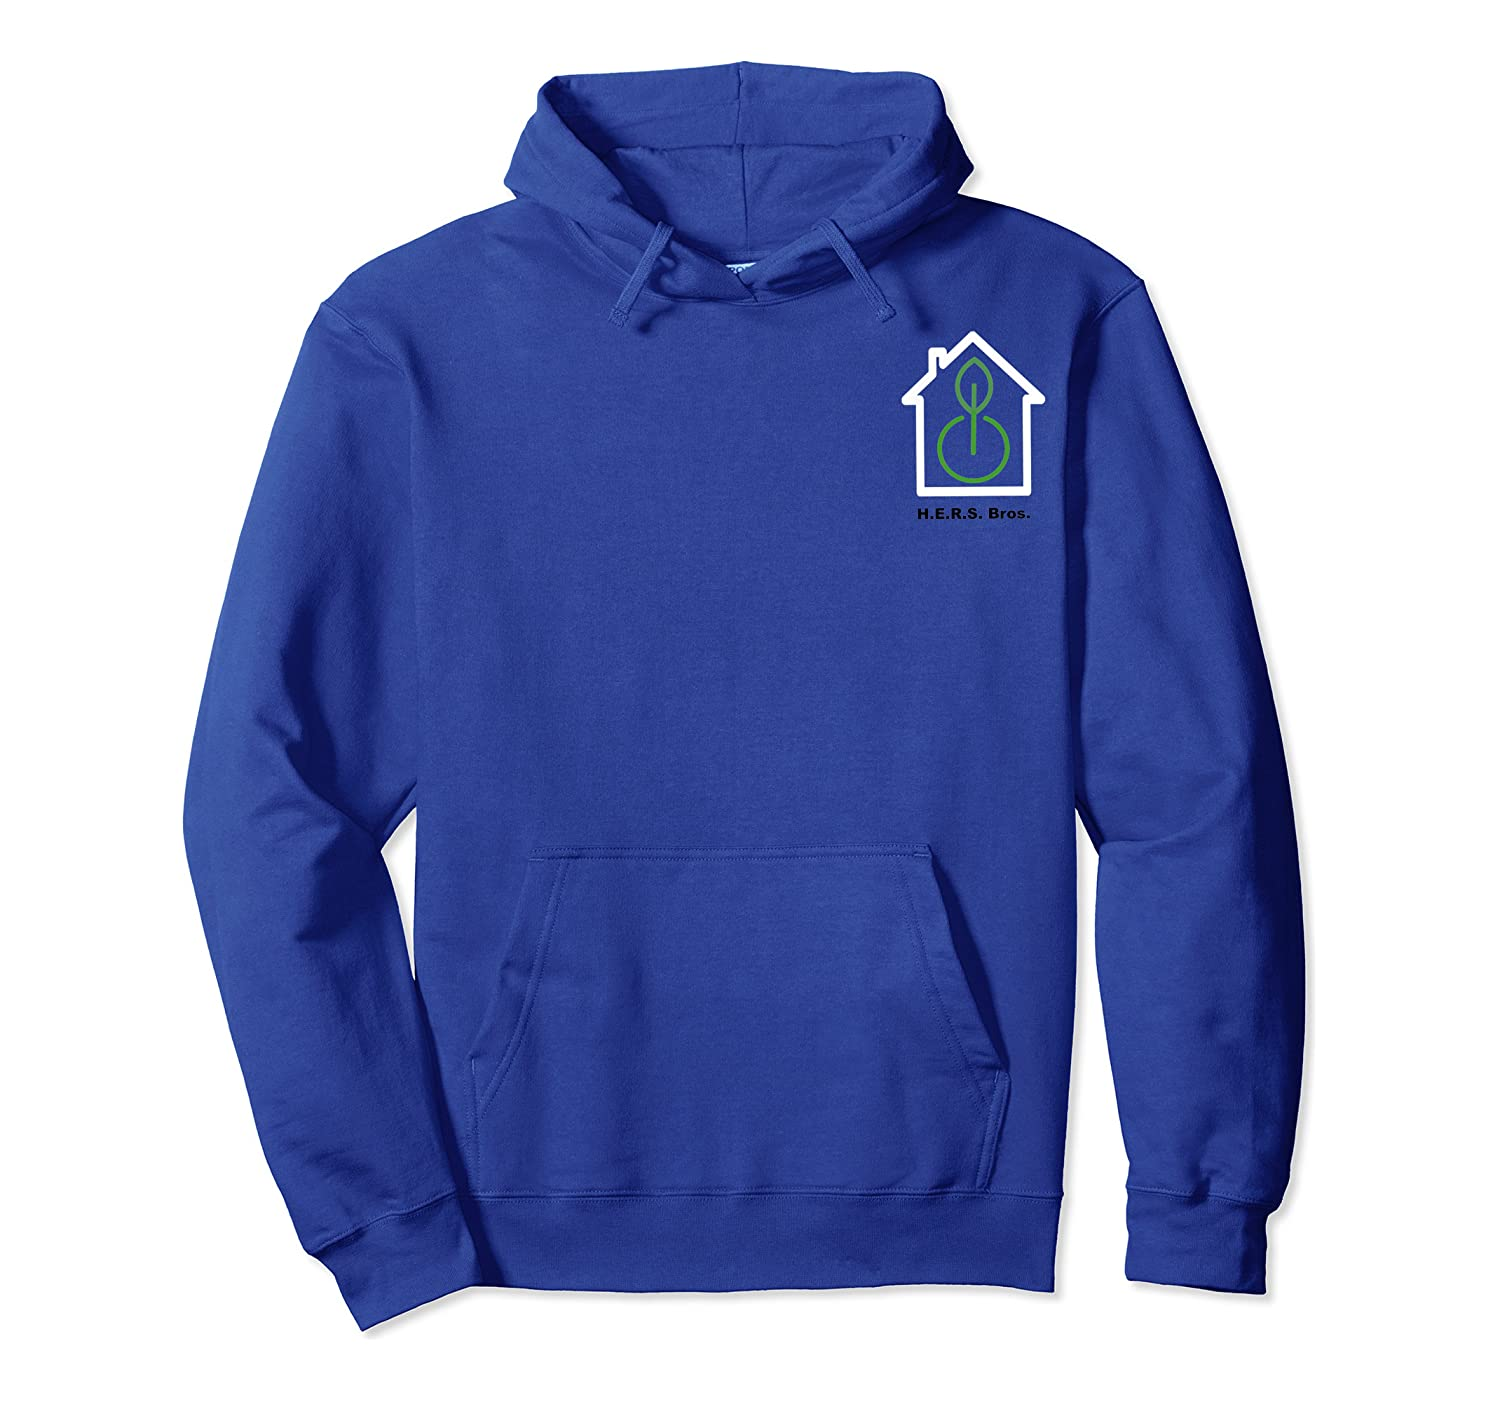 S Hers Bros Home Energy Rating System T-shirt Unisex Pullover Hoodie